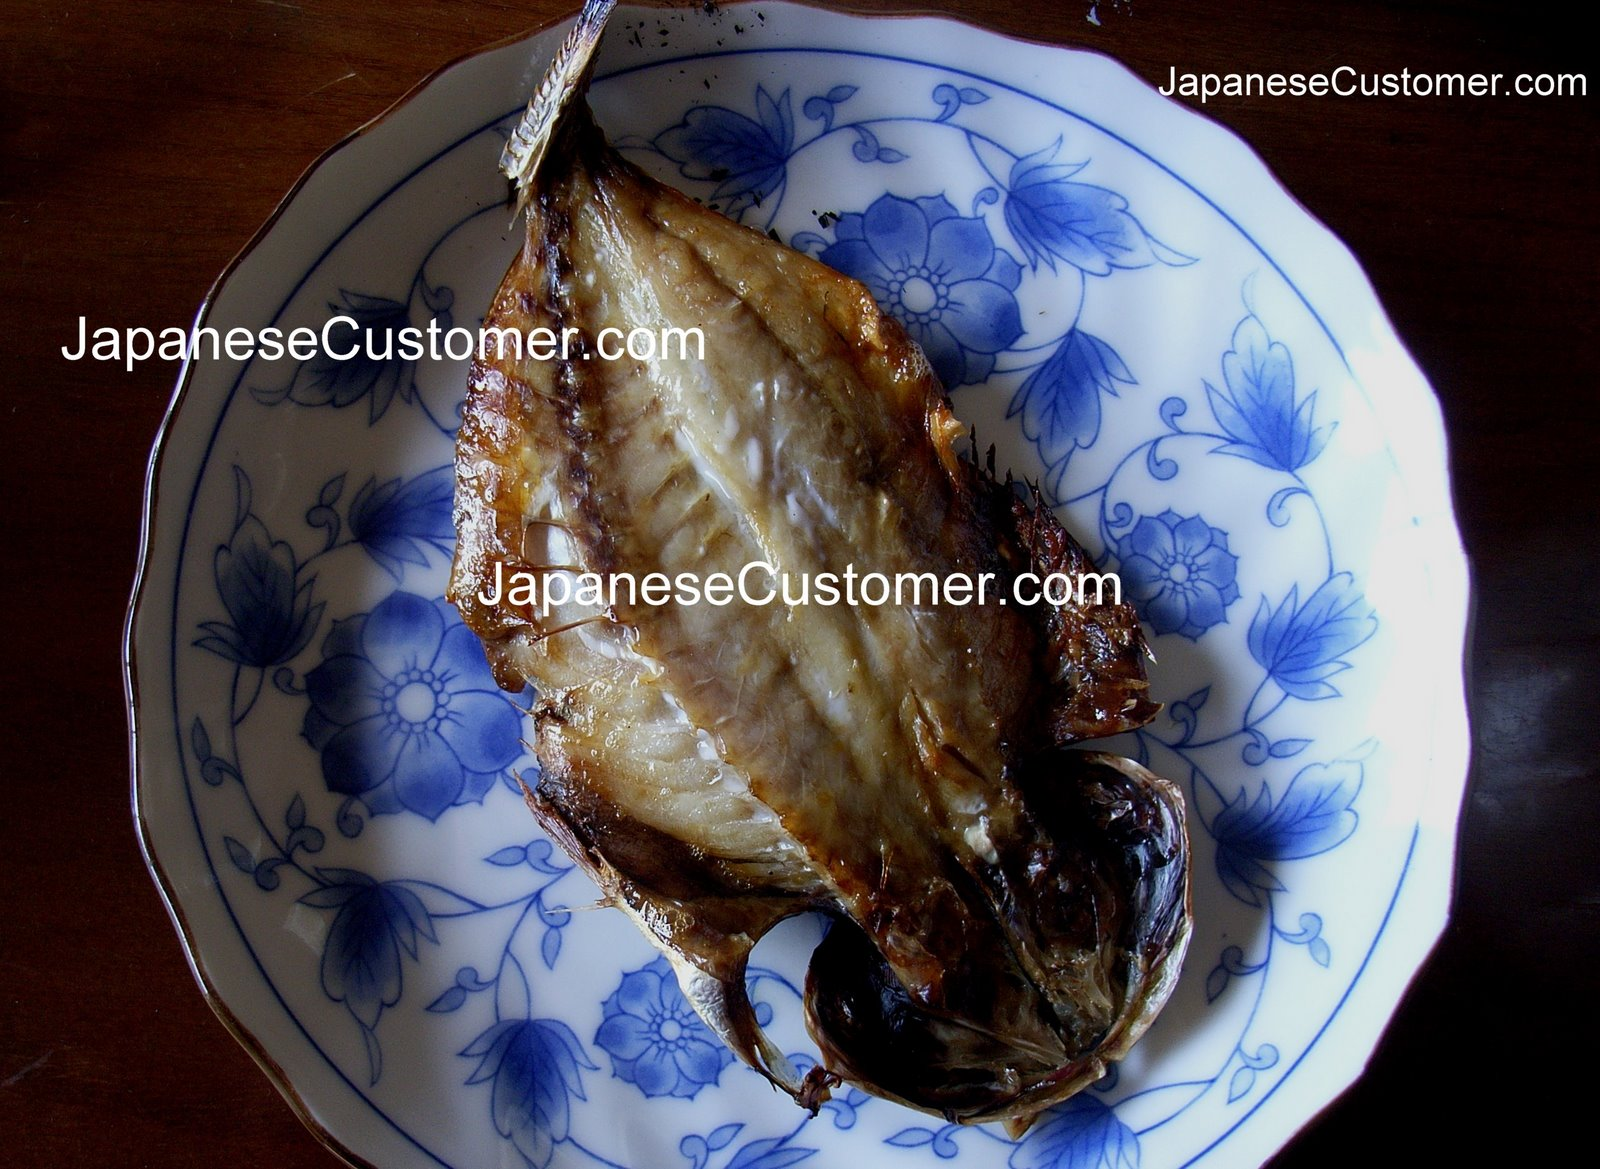 Grilled fish for breakfast, Japan Copyright Peter Hanami 2014